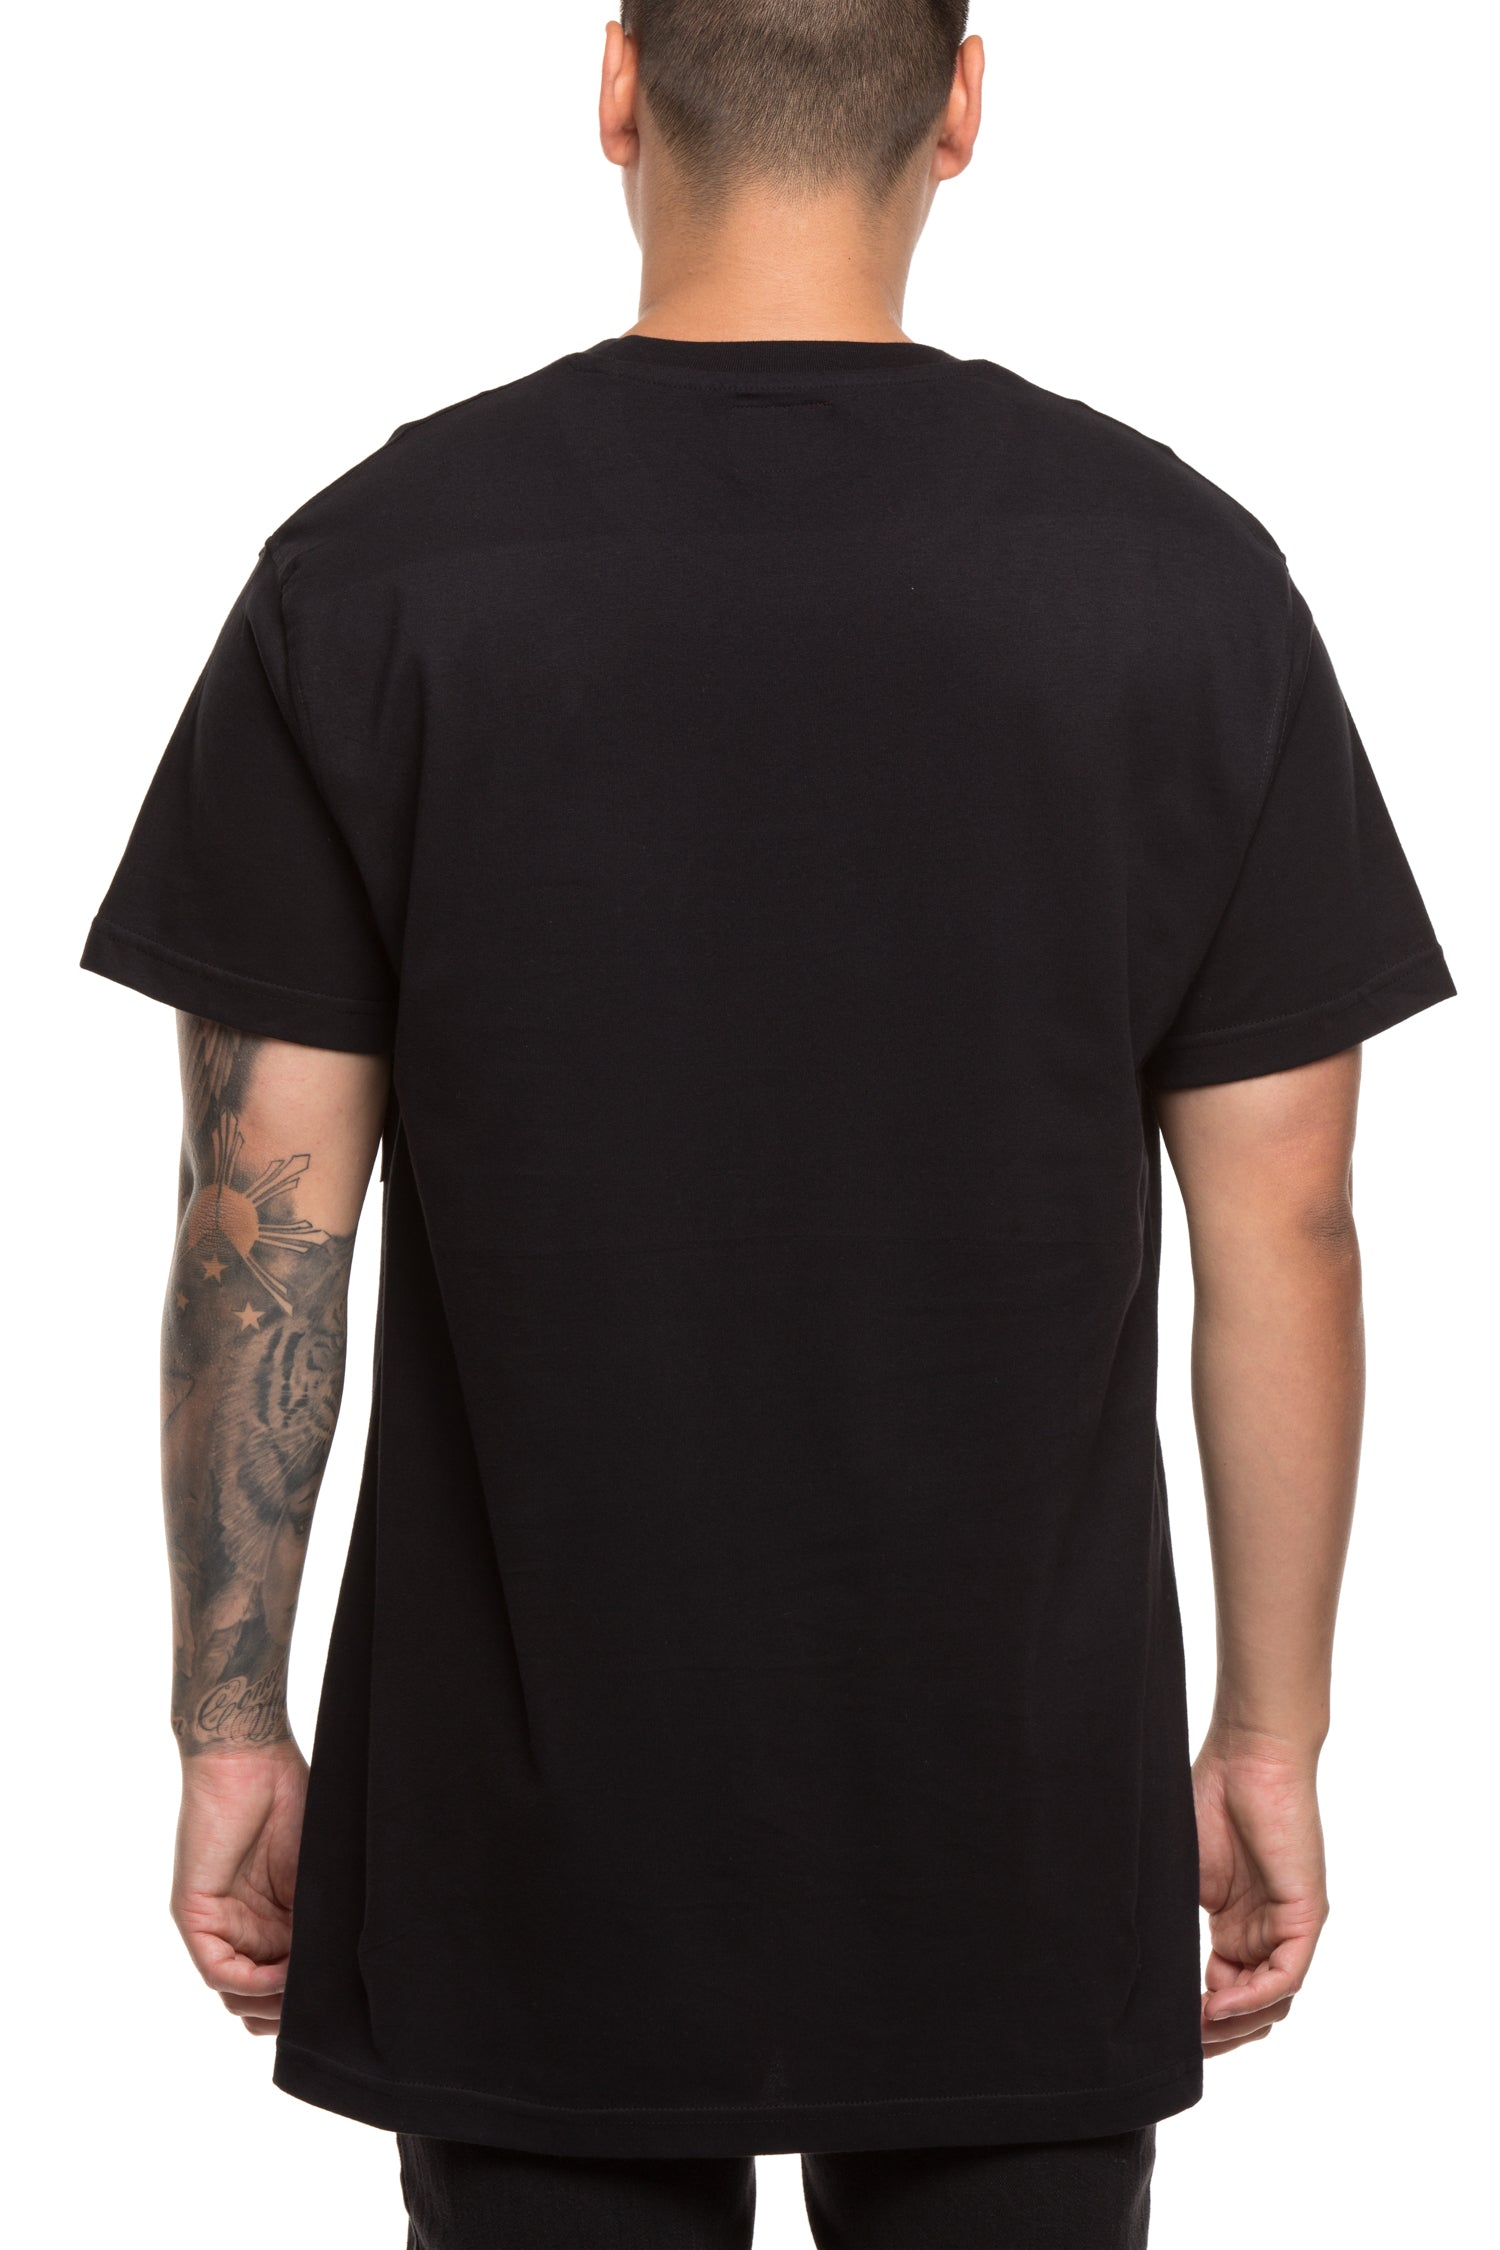 LOITER NYC TEE - Black